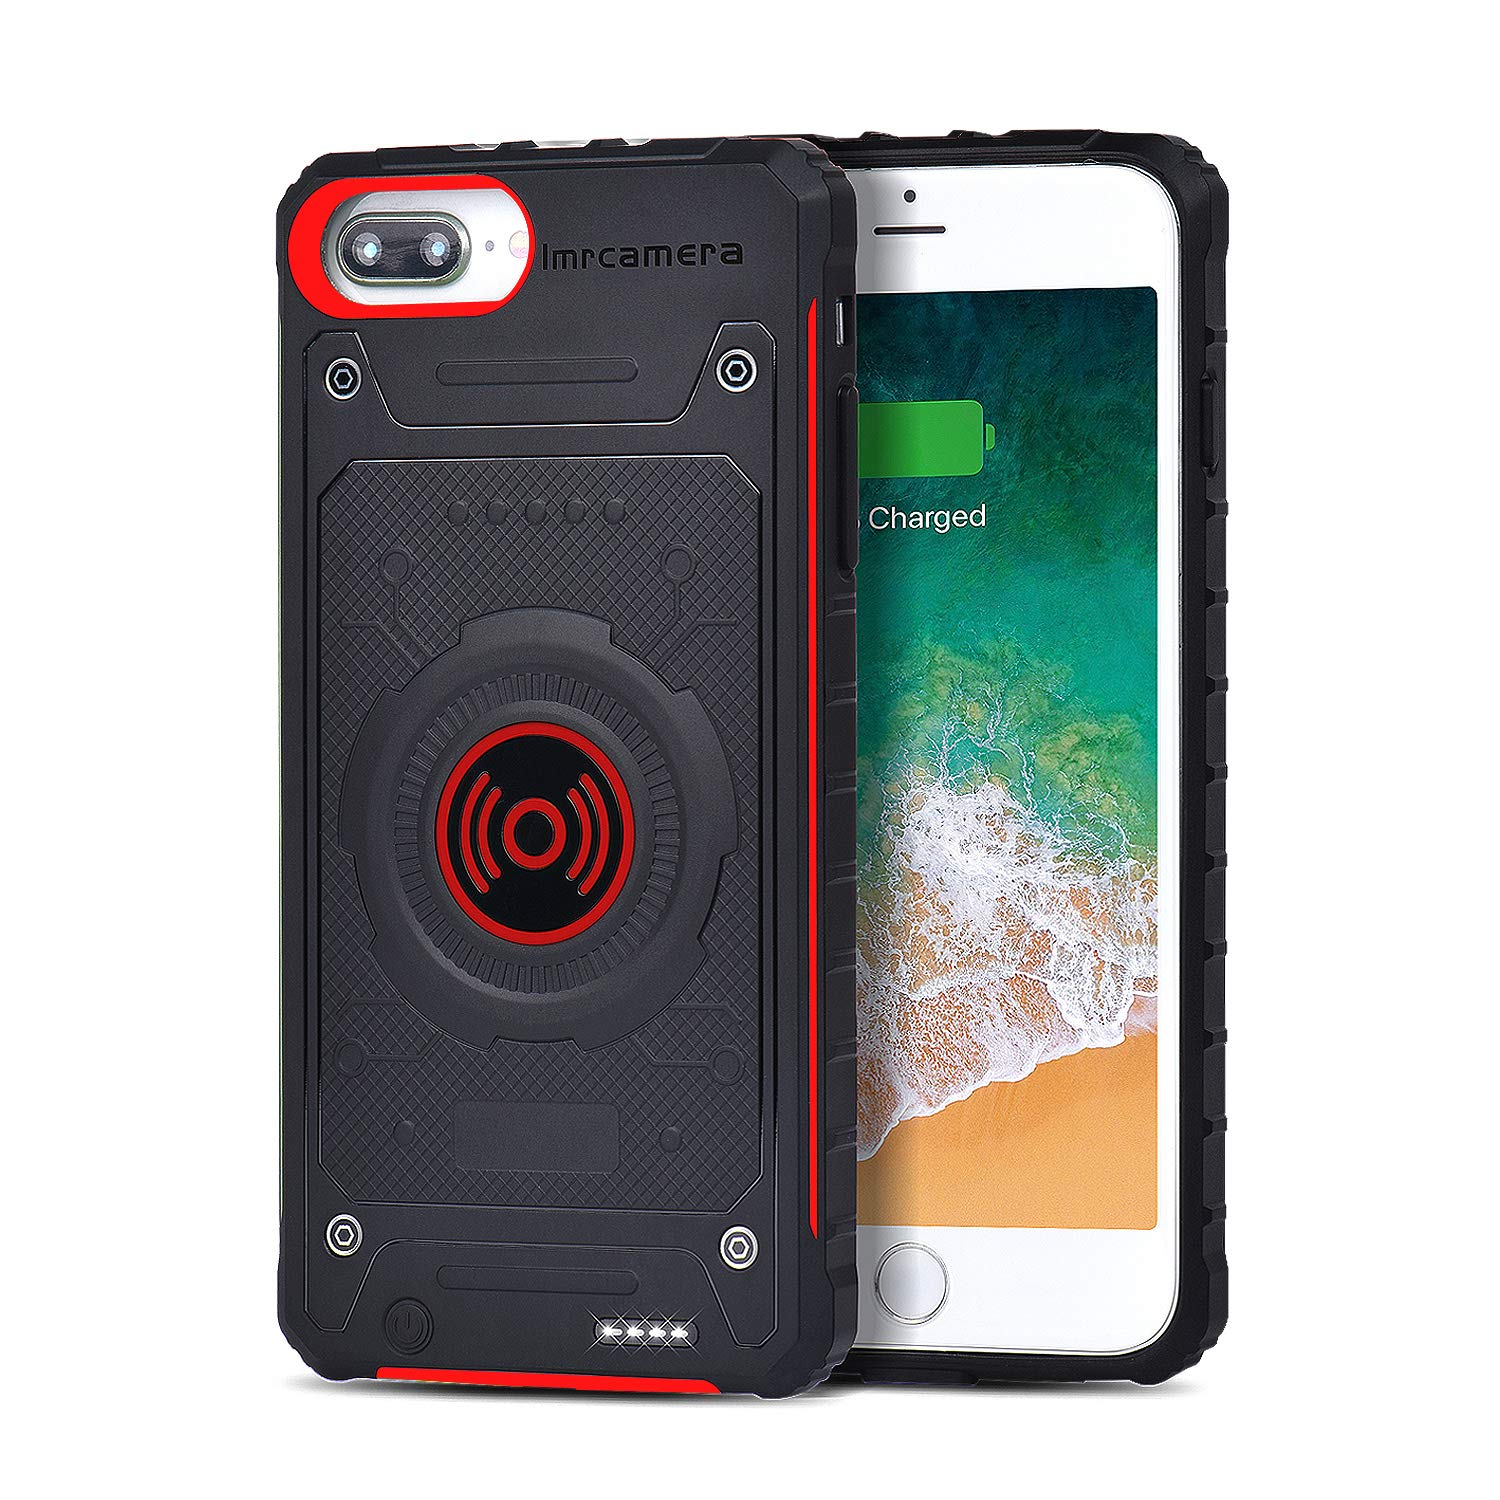 Battery Case Compatible 7 Plus/iPhone 8 Plus/6s Plus/6 Plus Charger case - 4000mAh Support Wireless Extended Qi Charging Power Case and Wired Charging Portable External Battery Power Bank(5.5-inch) IMRcamera